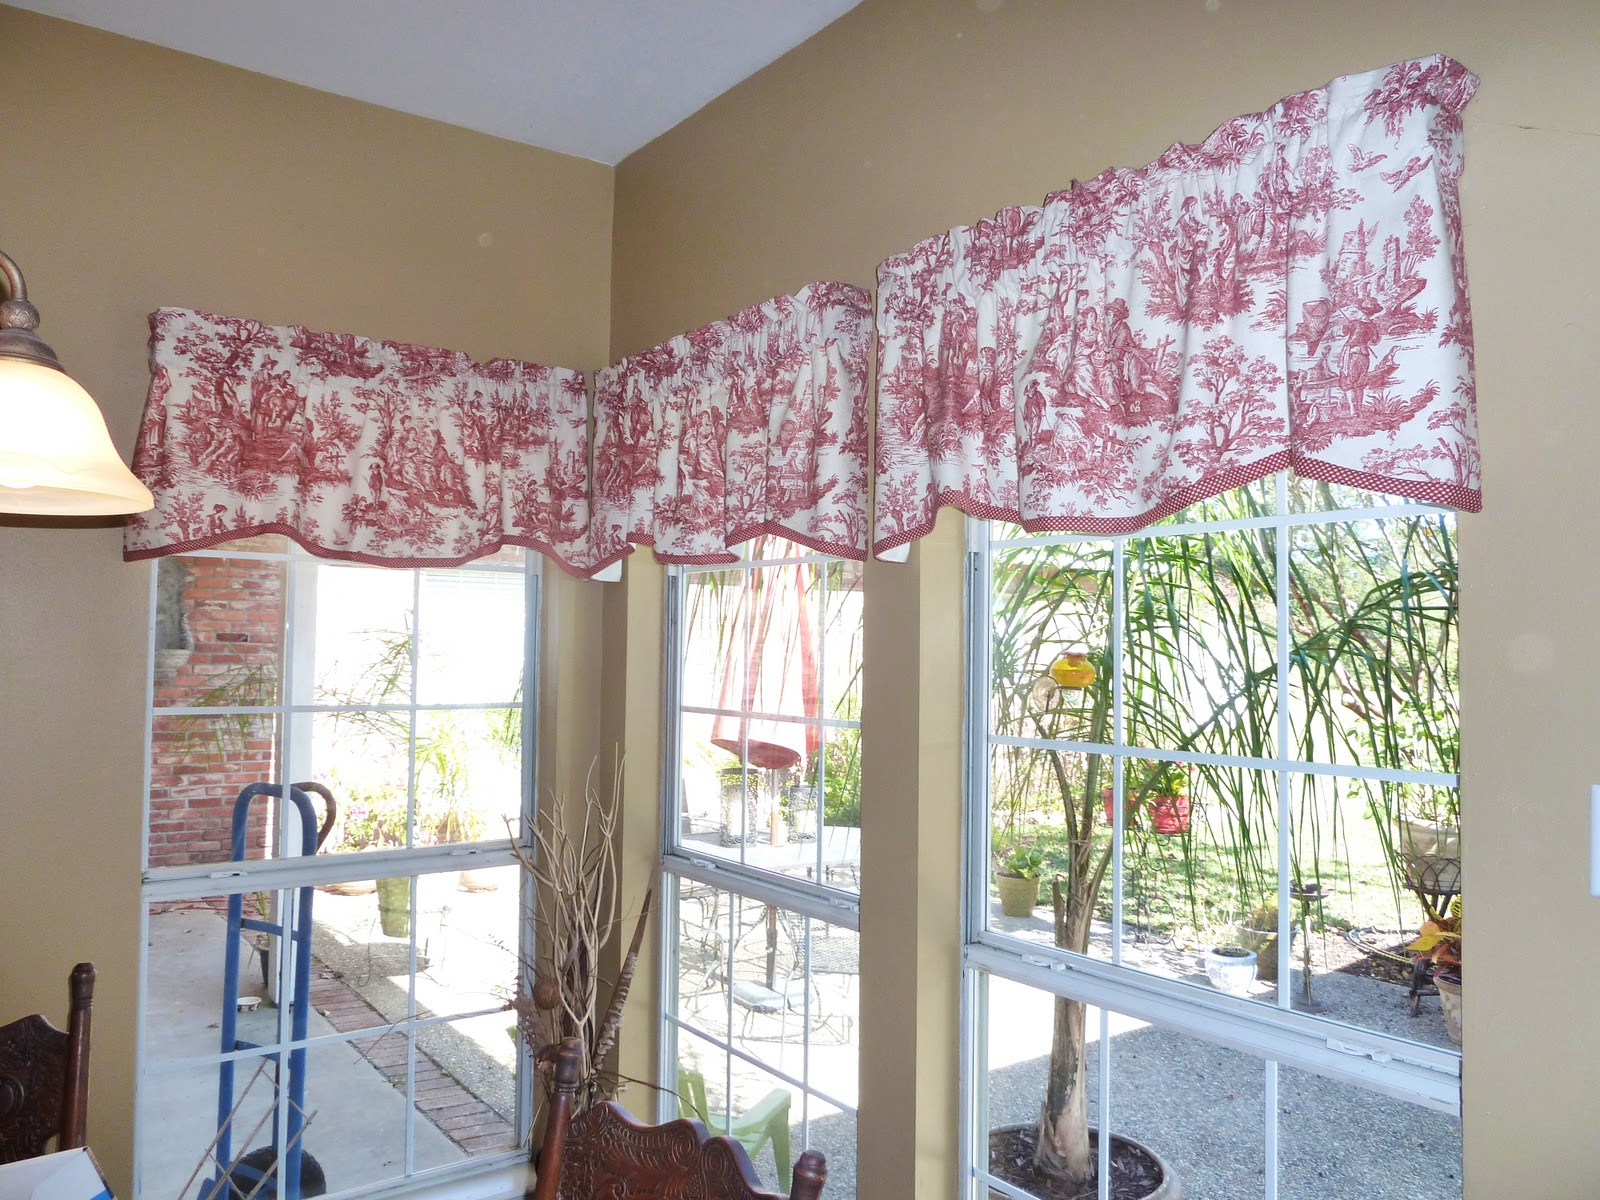 How To Match Rugs And Curtains Red and White Toile